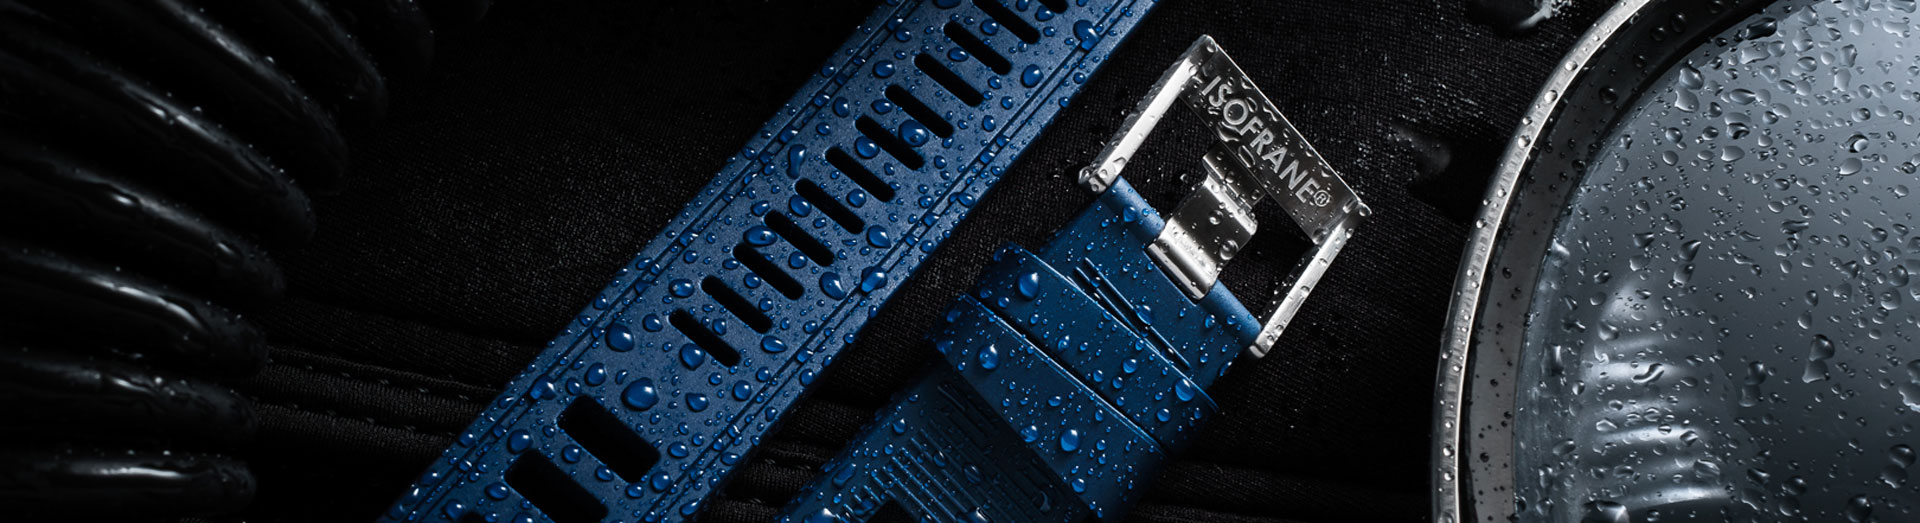 ISOfrane dive watch band